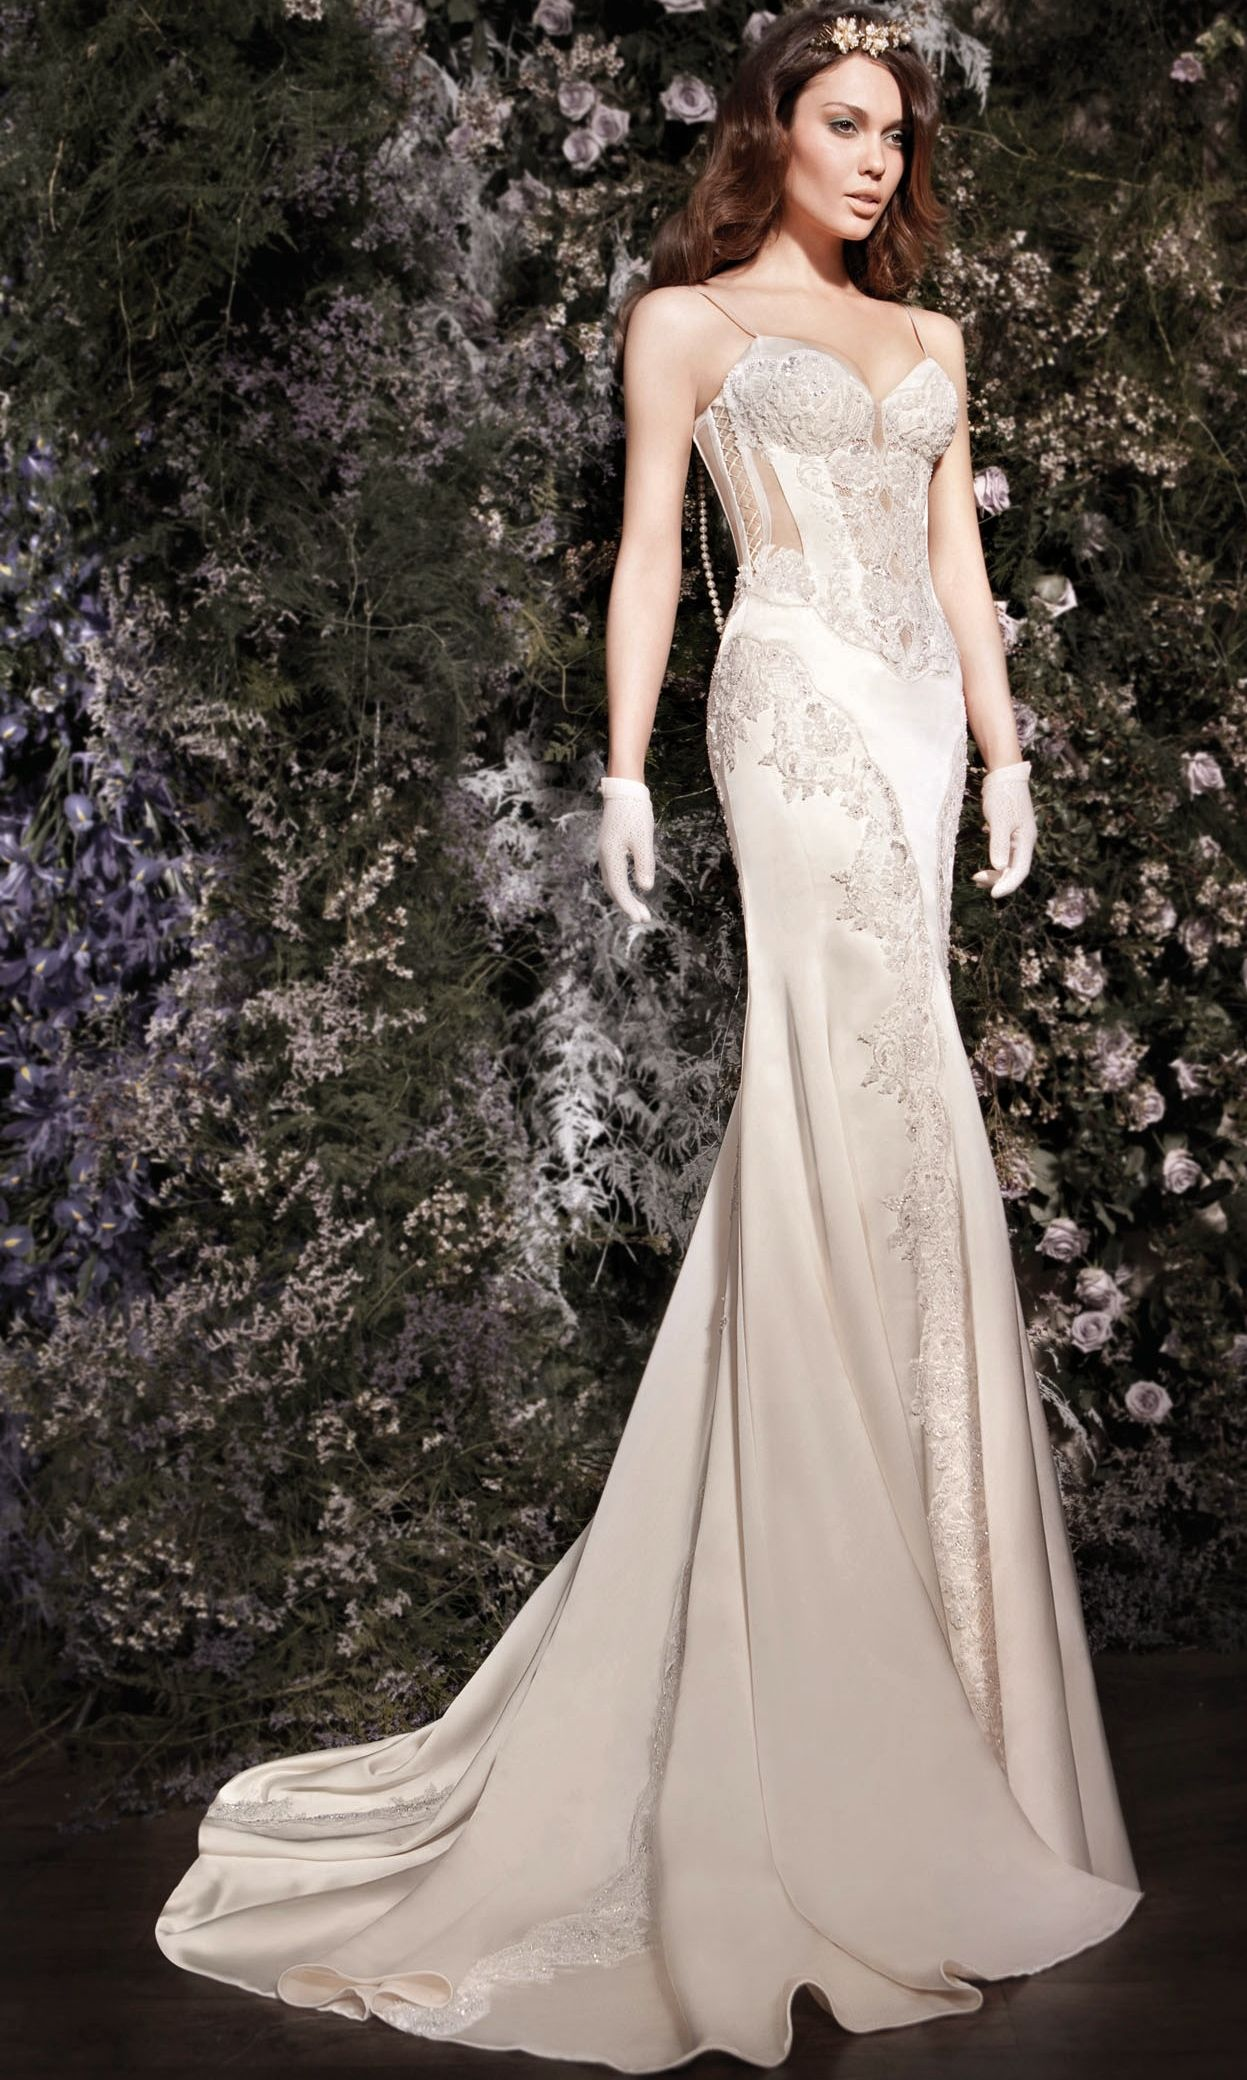 Choosing The Right Wedding Dress For Your Body Shape Best Wedding